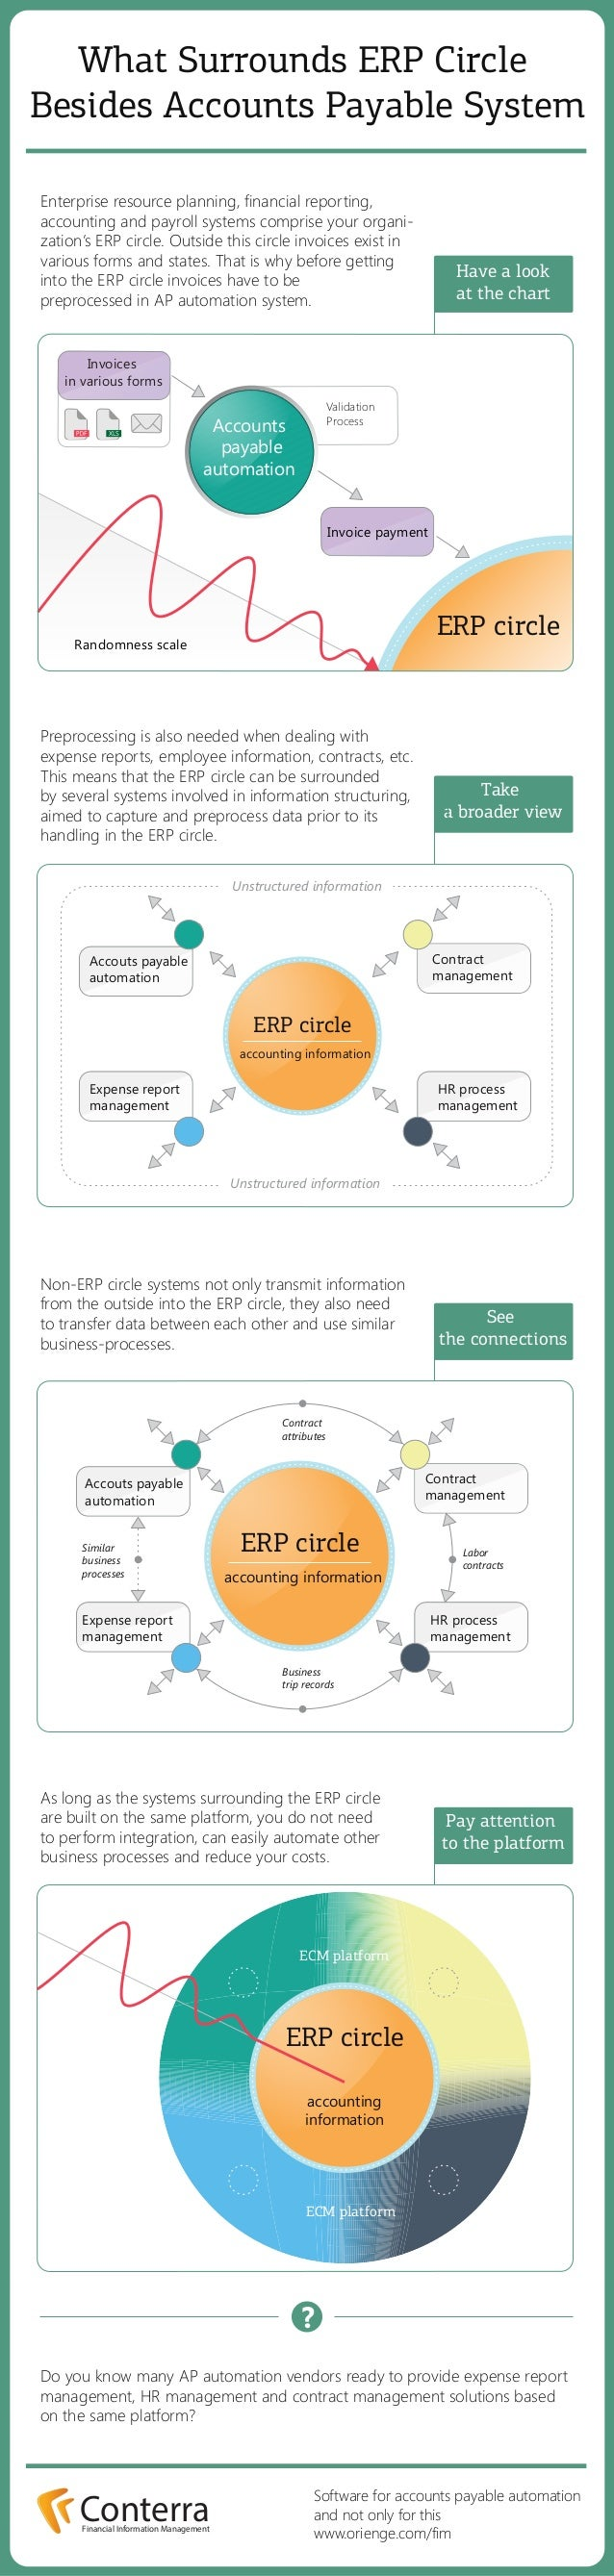 What Surrounds ERP Circle Besides Accounts Payable System